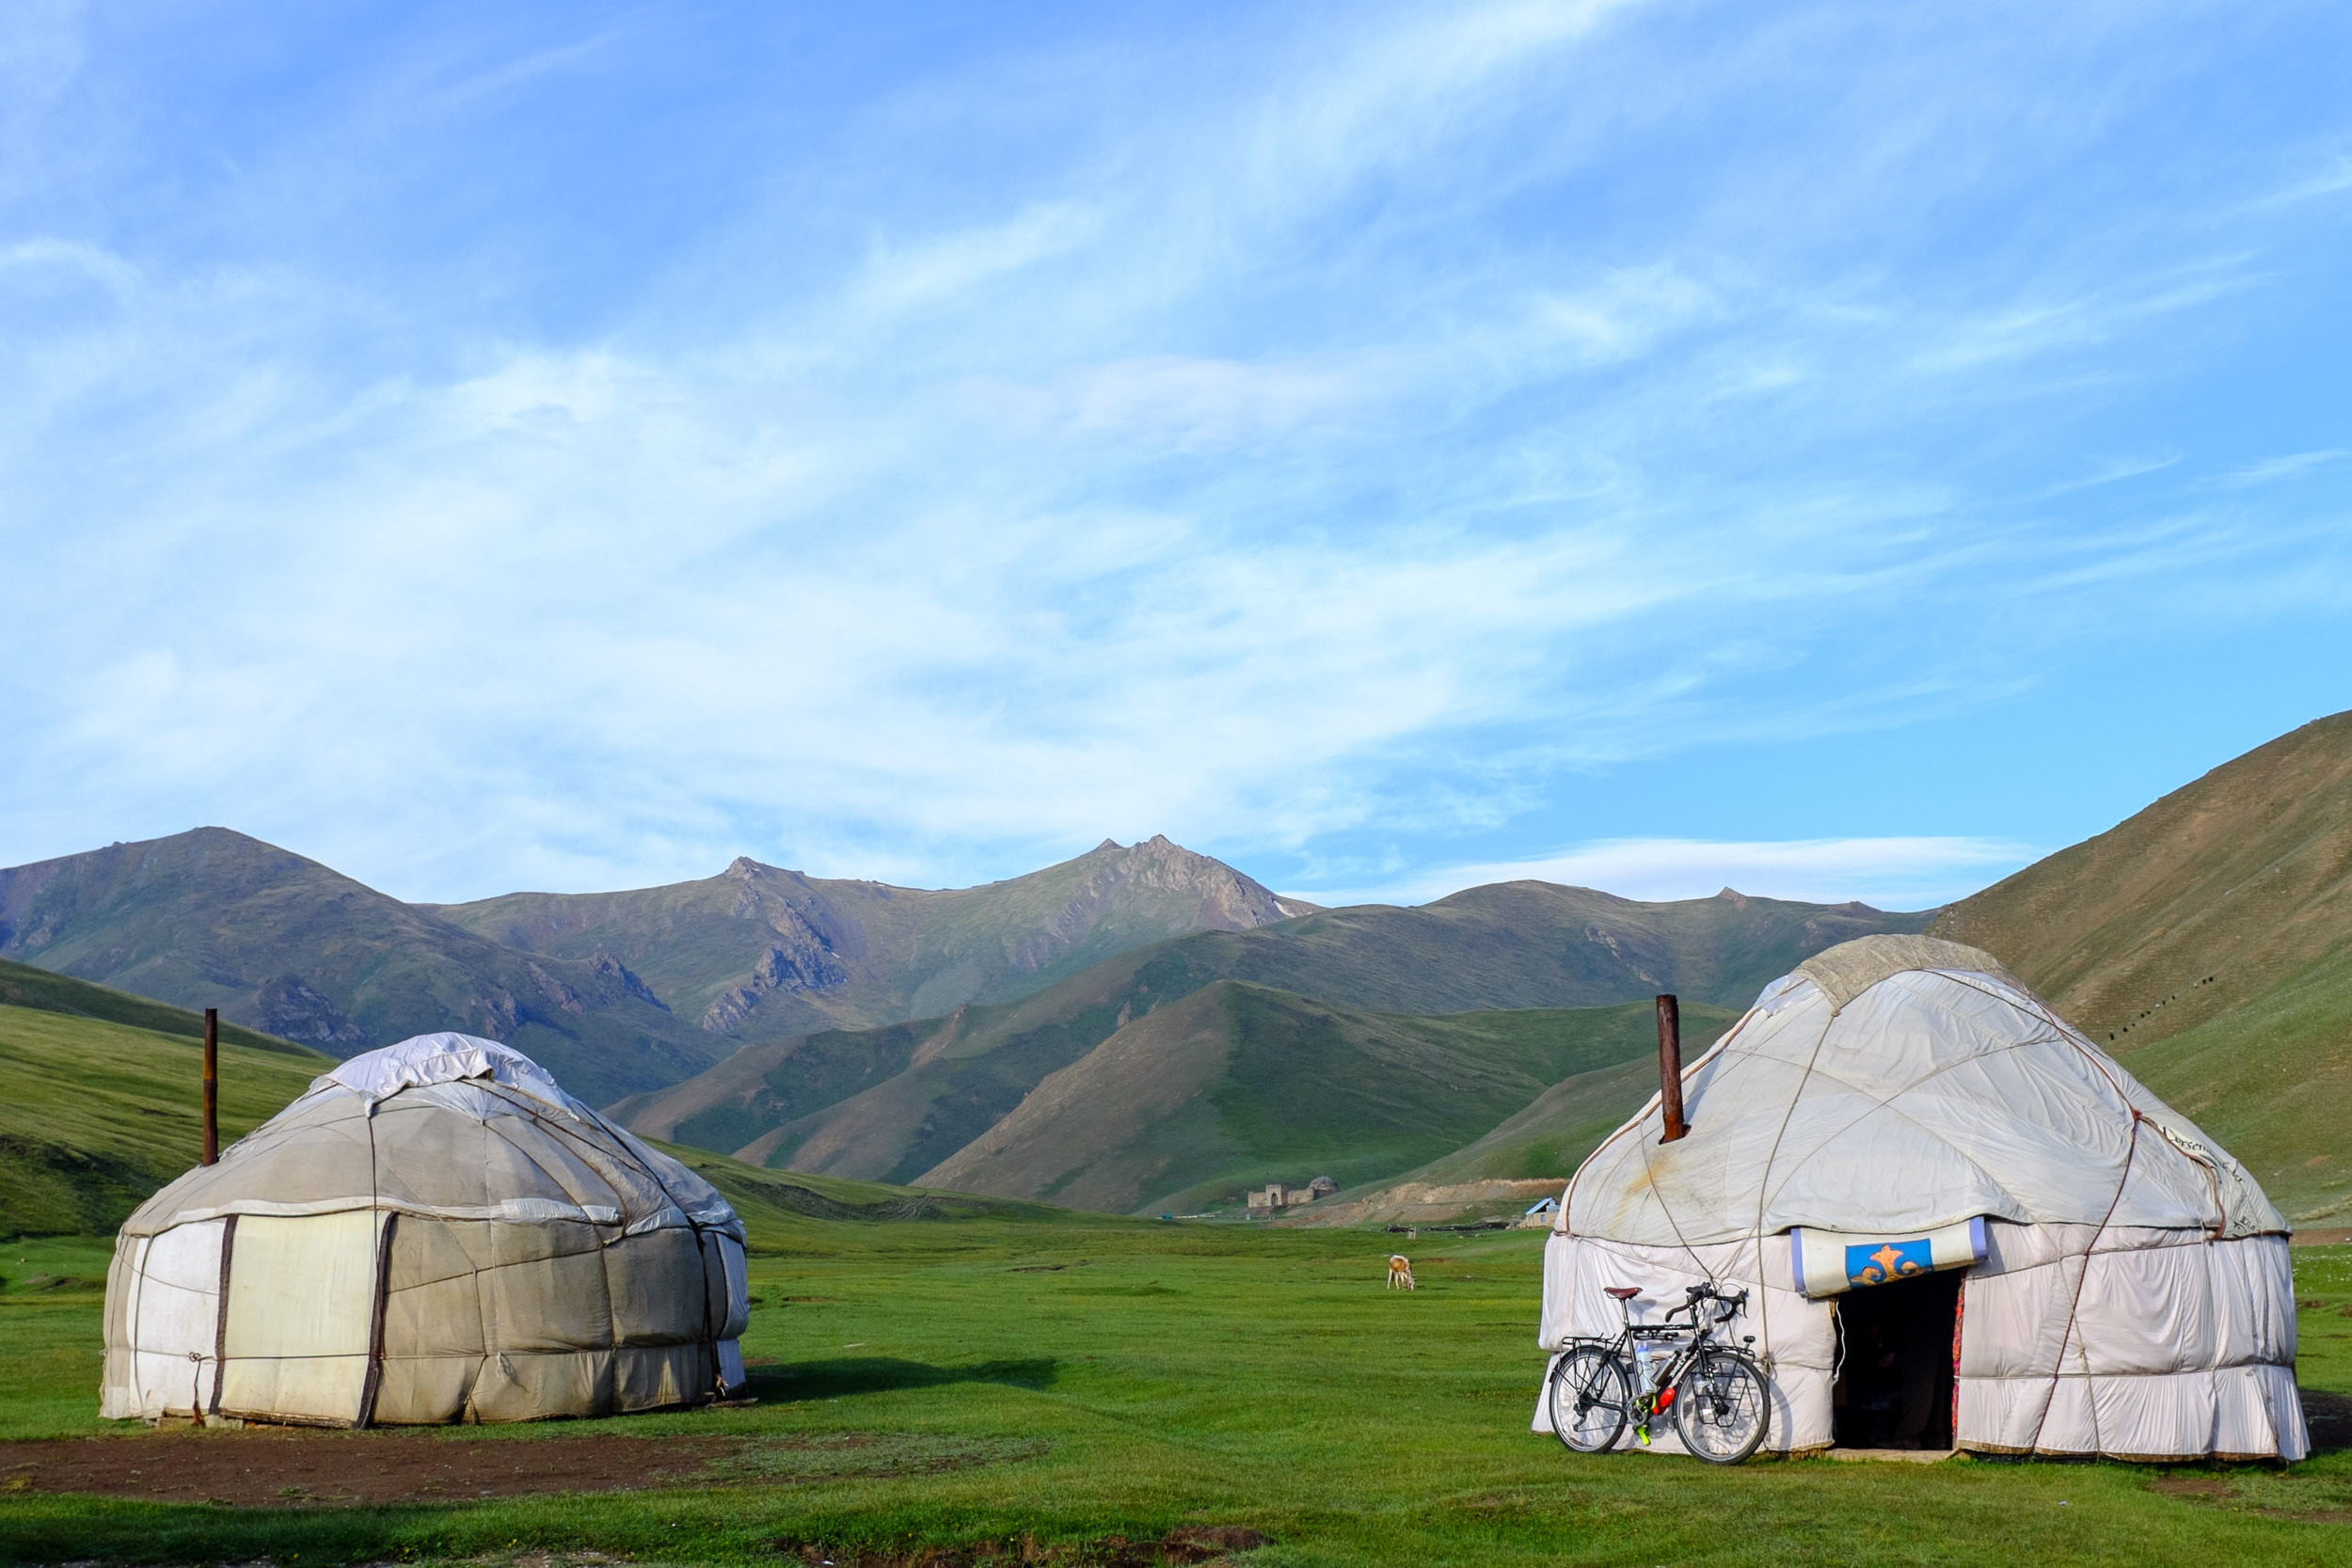 Preparing our bikes at Sabyrbeks's yurt camp